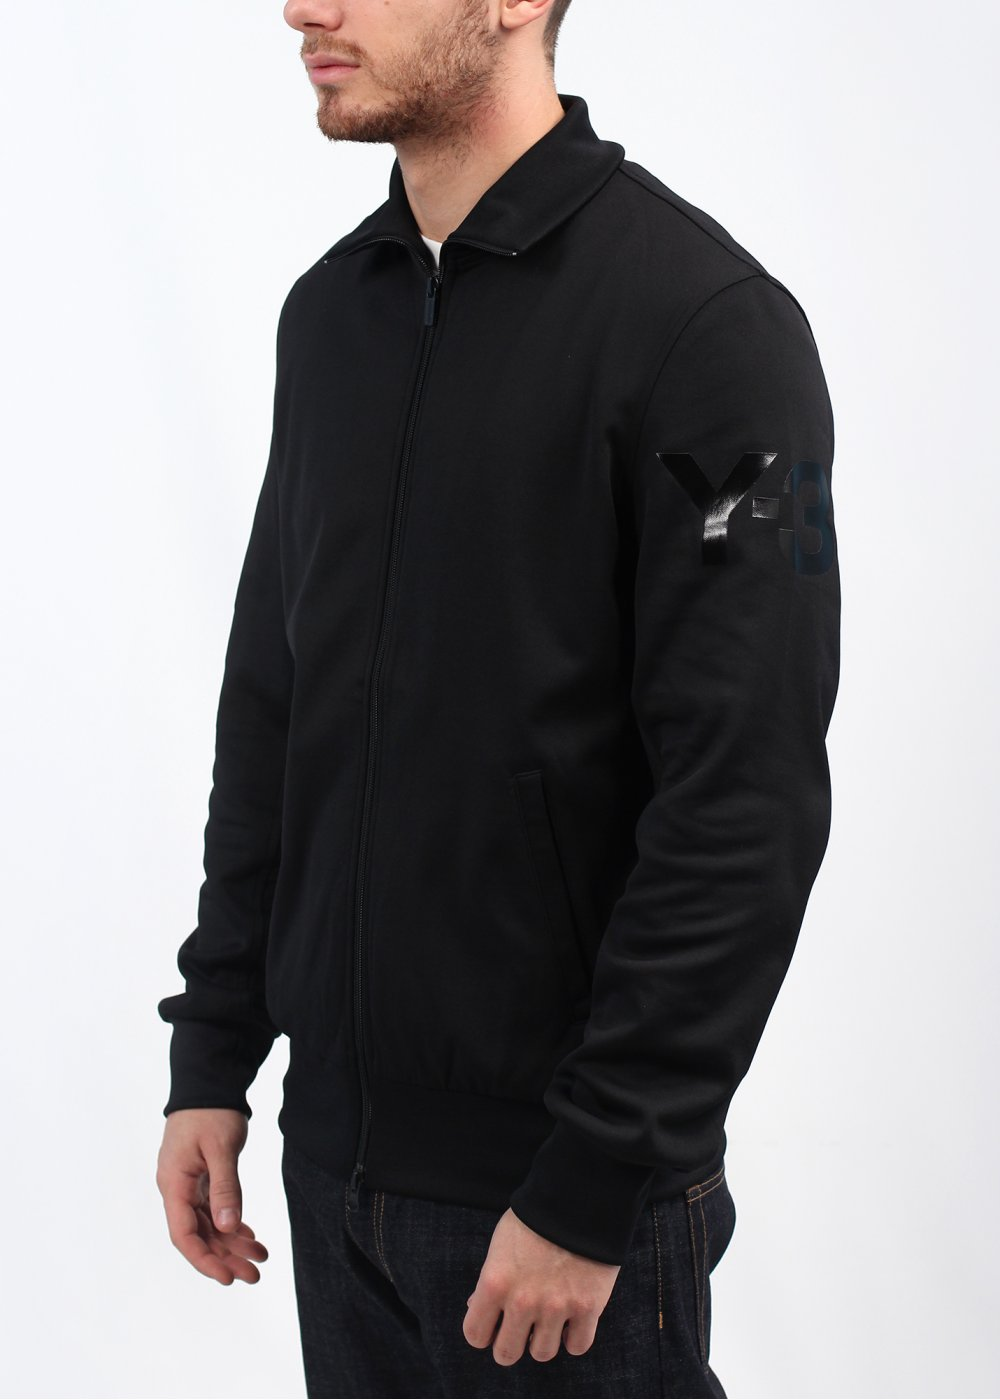 bea9b294d adidas Y3 M CL Classic Track Top - Black